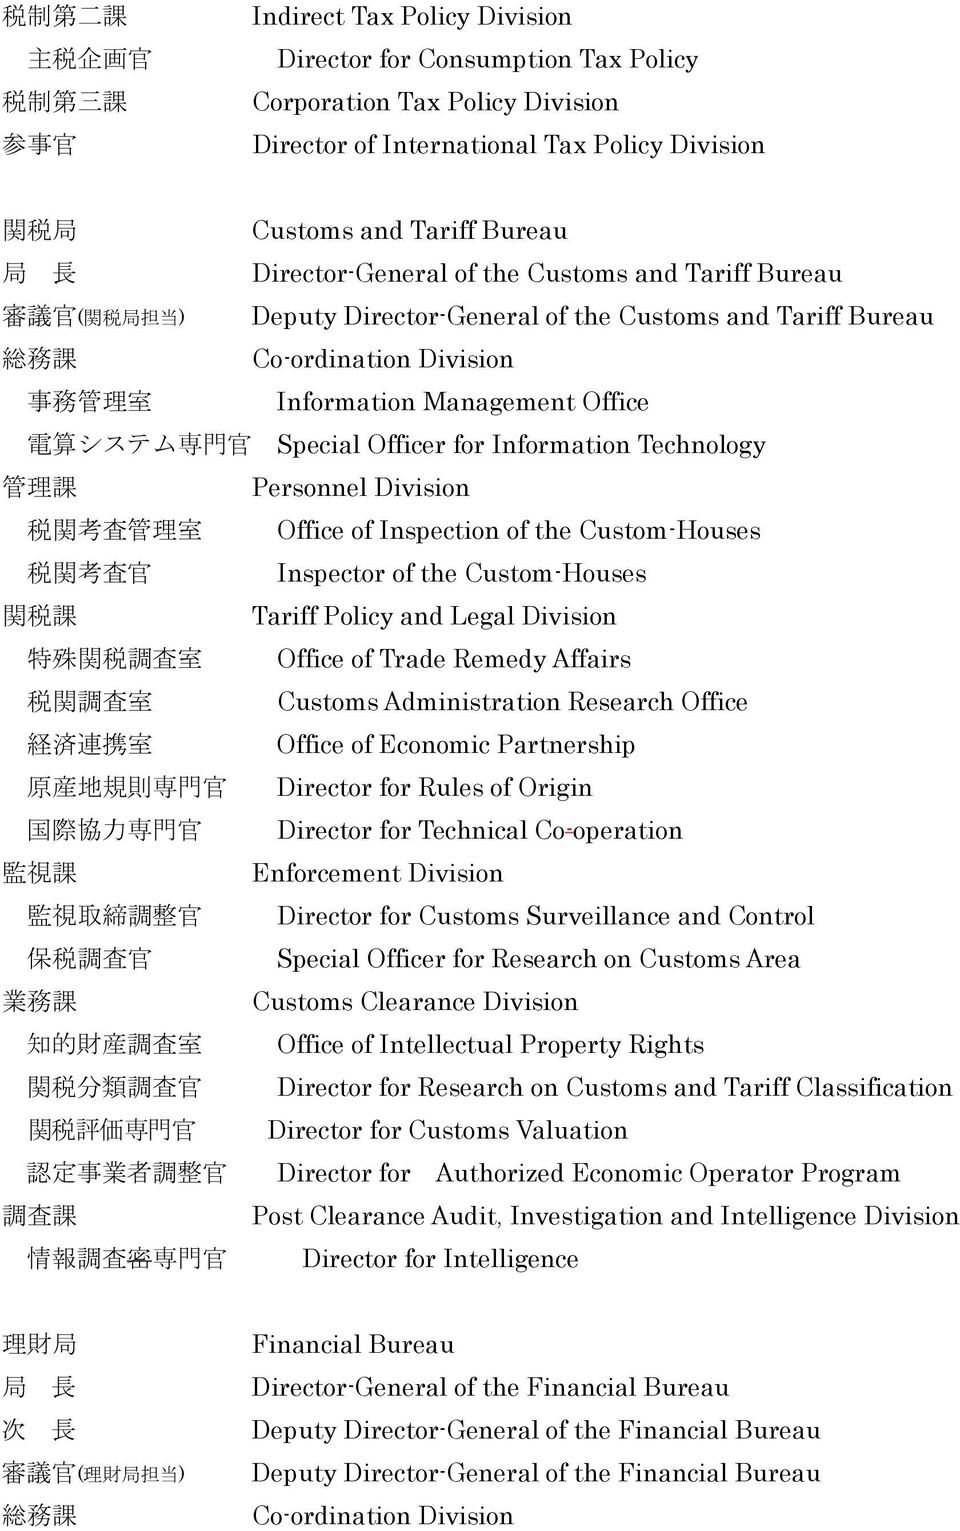 Special Officer for Information Technology 管 理 課 Personnel Division 税 関 考 査 管 理 室 Office of Inspection of the Custom-Houses 税 関 考 査 官 Inspector of the Custom-Houses 関 税 課 Tariff Policy and Legal